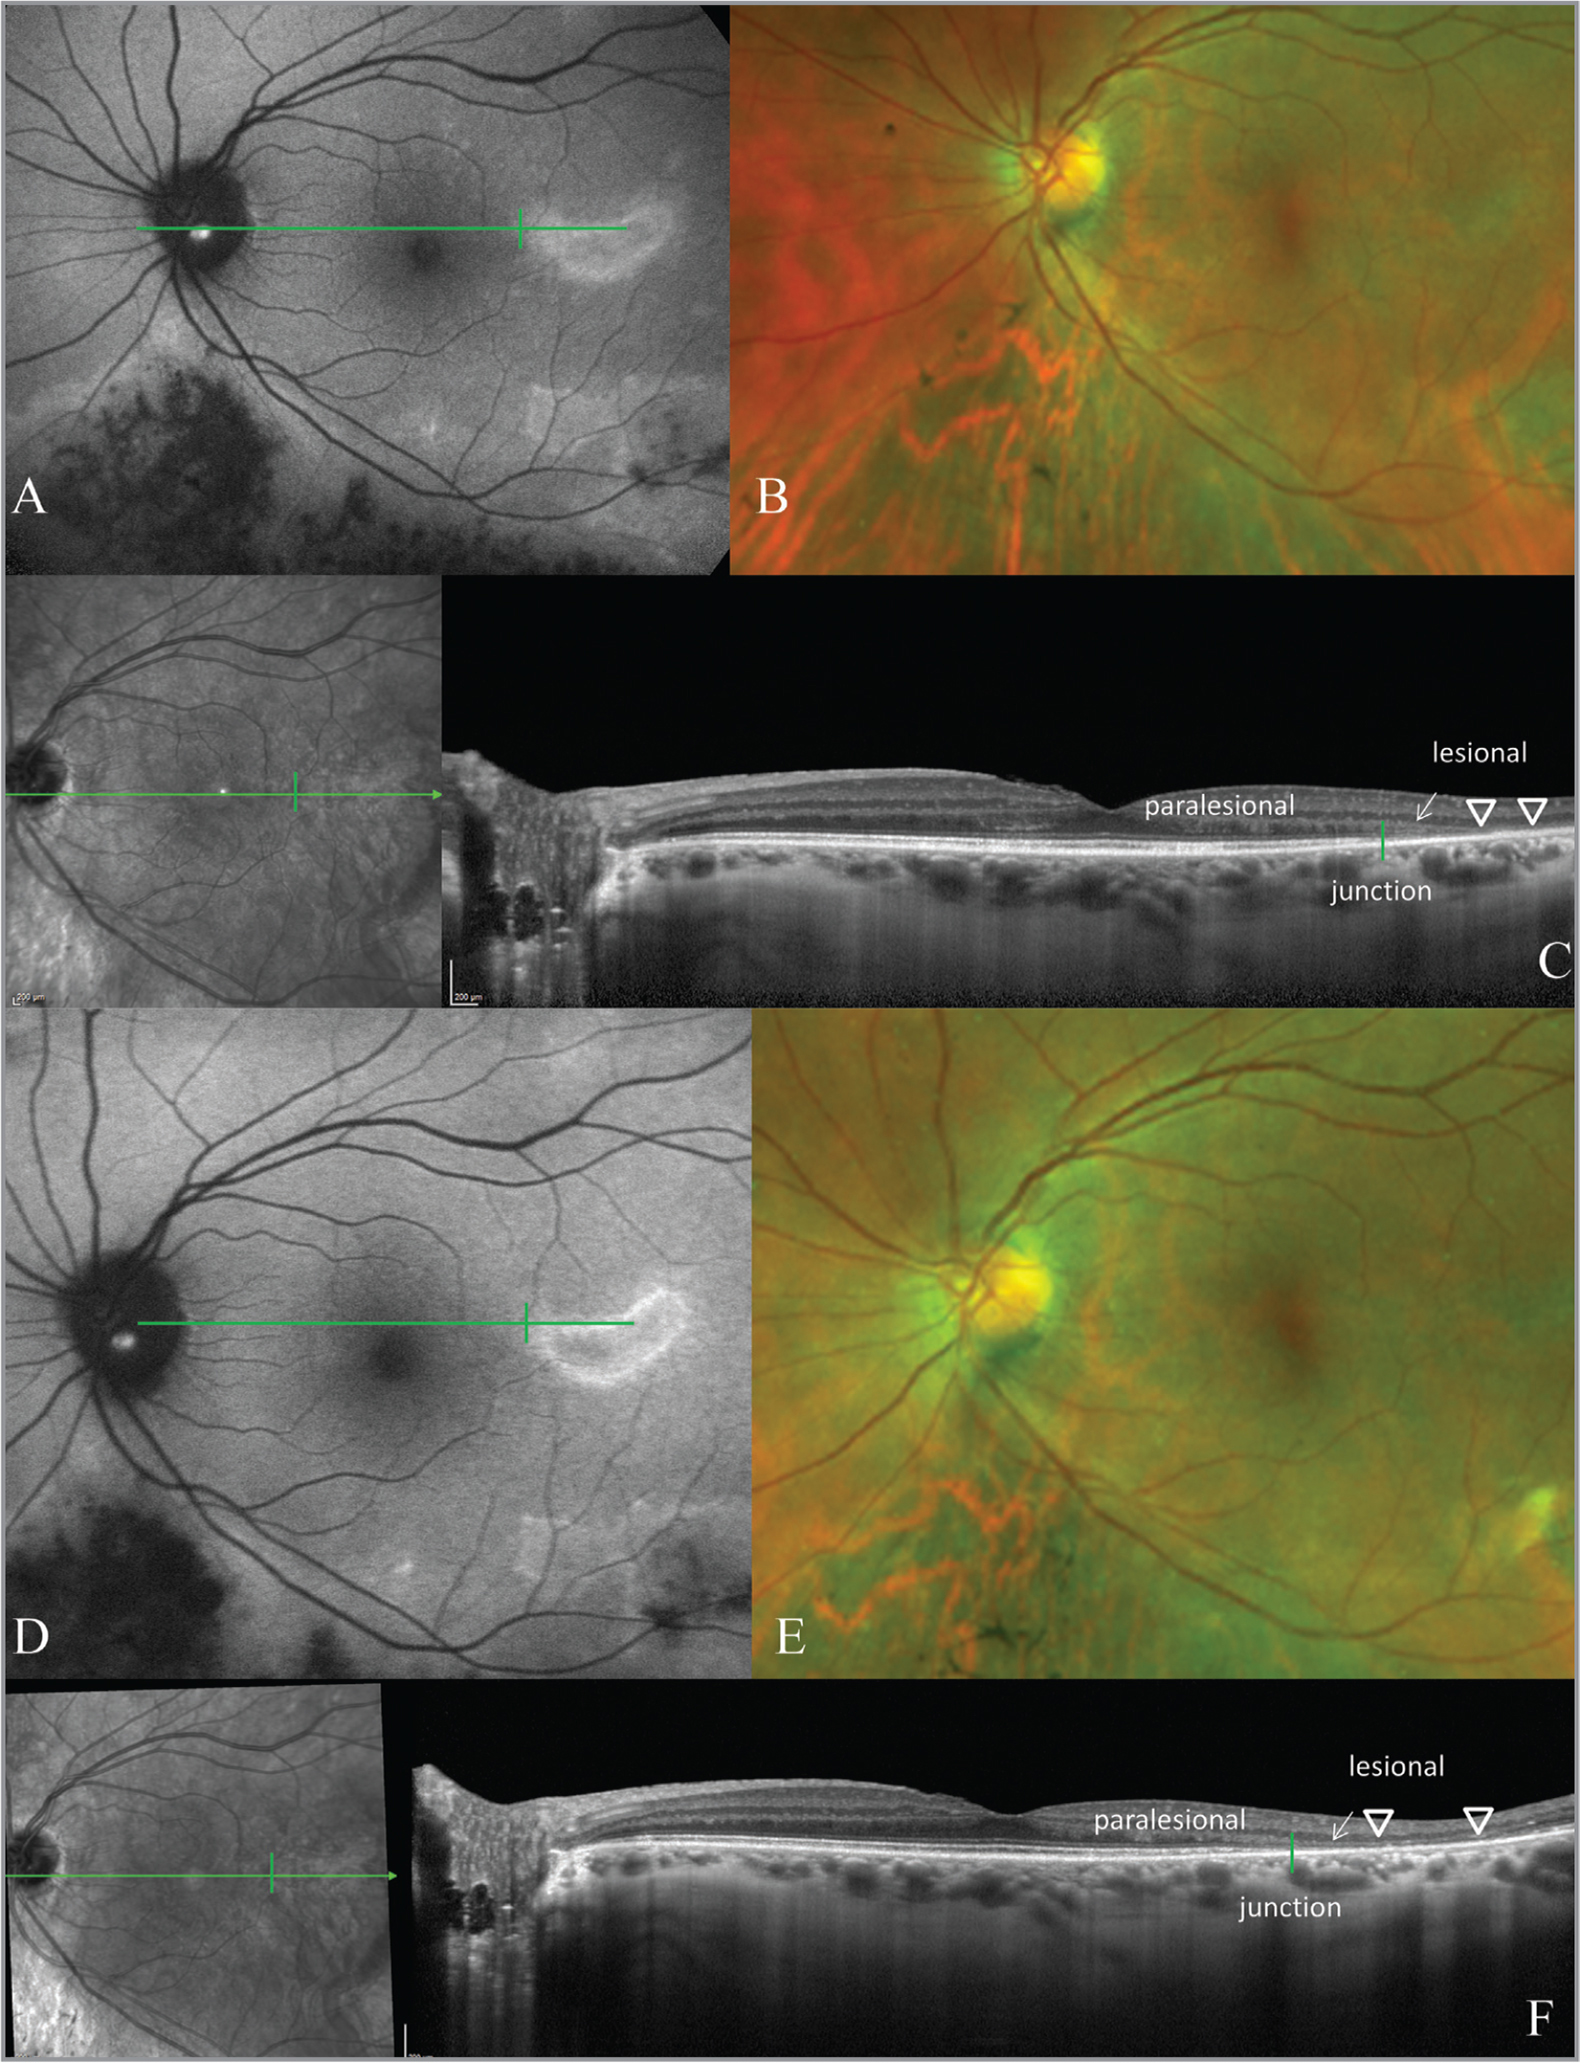 Fundus autofluorescence (FAF) (A) of the left eye of a patient with persistent hyperautofluorescence from 2013, with a multizonal distribution of the hyperautofluorescent lesions. The color fundus image (B) shows retinal pigment epithelium (RPE) changes inferior to the disc. Optical coherence tomography (OCT) through the patchy lesion (C) demonstrates a loss of ellipsoid zone and outer retinal layers (arrow). There is a descent of the outer plexiform layer (OPL) at the junctional zone (vertical line). Figures D-F are from 3 years later, in 2016. There is a subtle reduction in the hyperautofluorescence in the nasal aspect of the patchy lesion (D) which otherwise retains a consistent size and distribution. The color image demonstrates some RPE migration nasal to the disc (E) but is otherwise unchanged. The OCT remained stable (F).